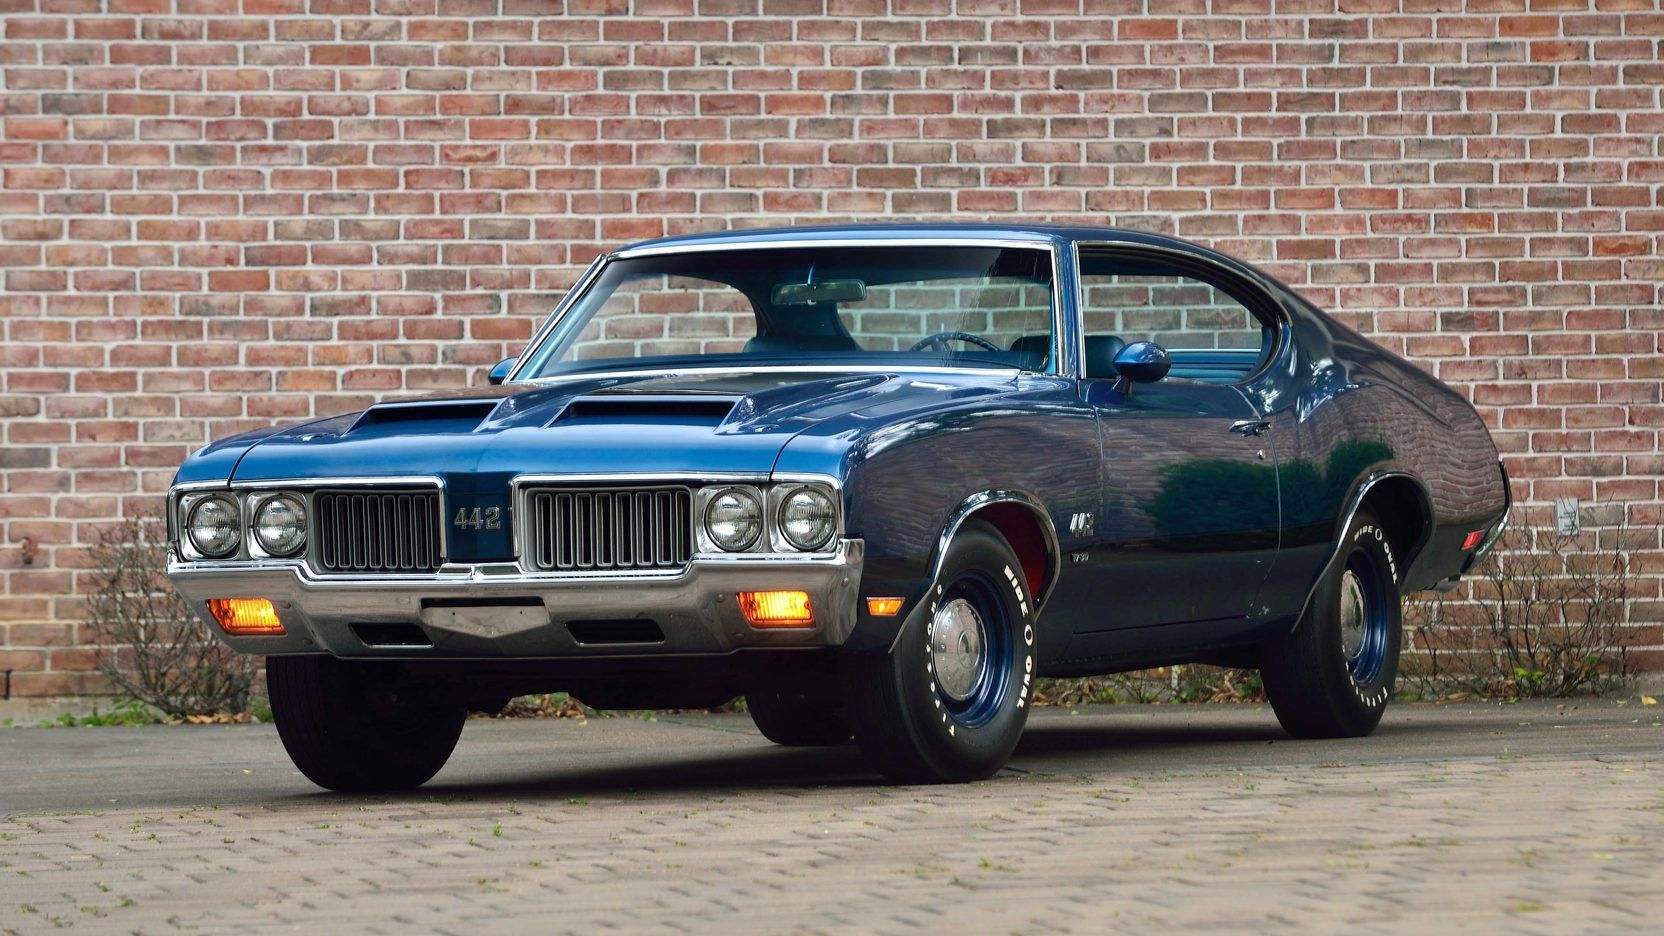 1970 Oldsmobile 442 W-30 - Unrestored 455/370 HP M21 4-Speed with ...